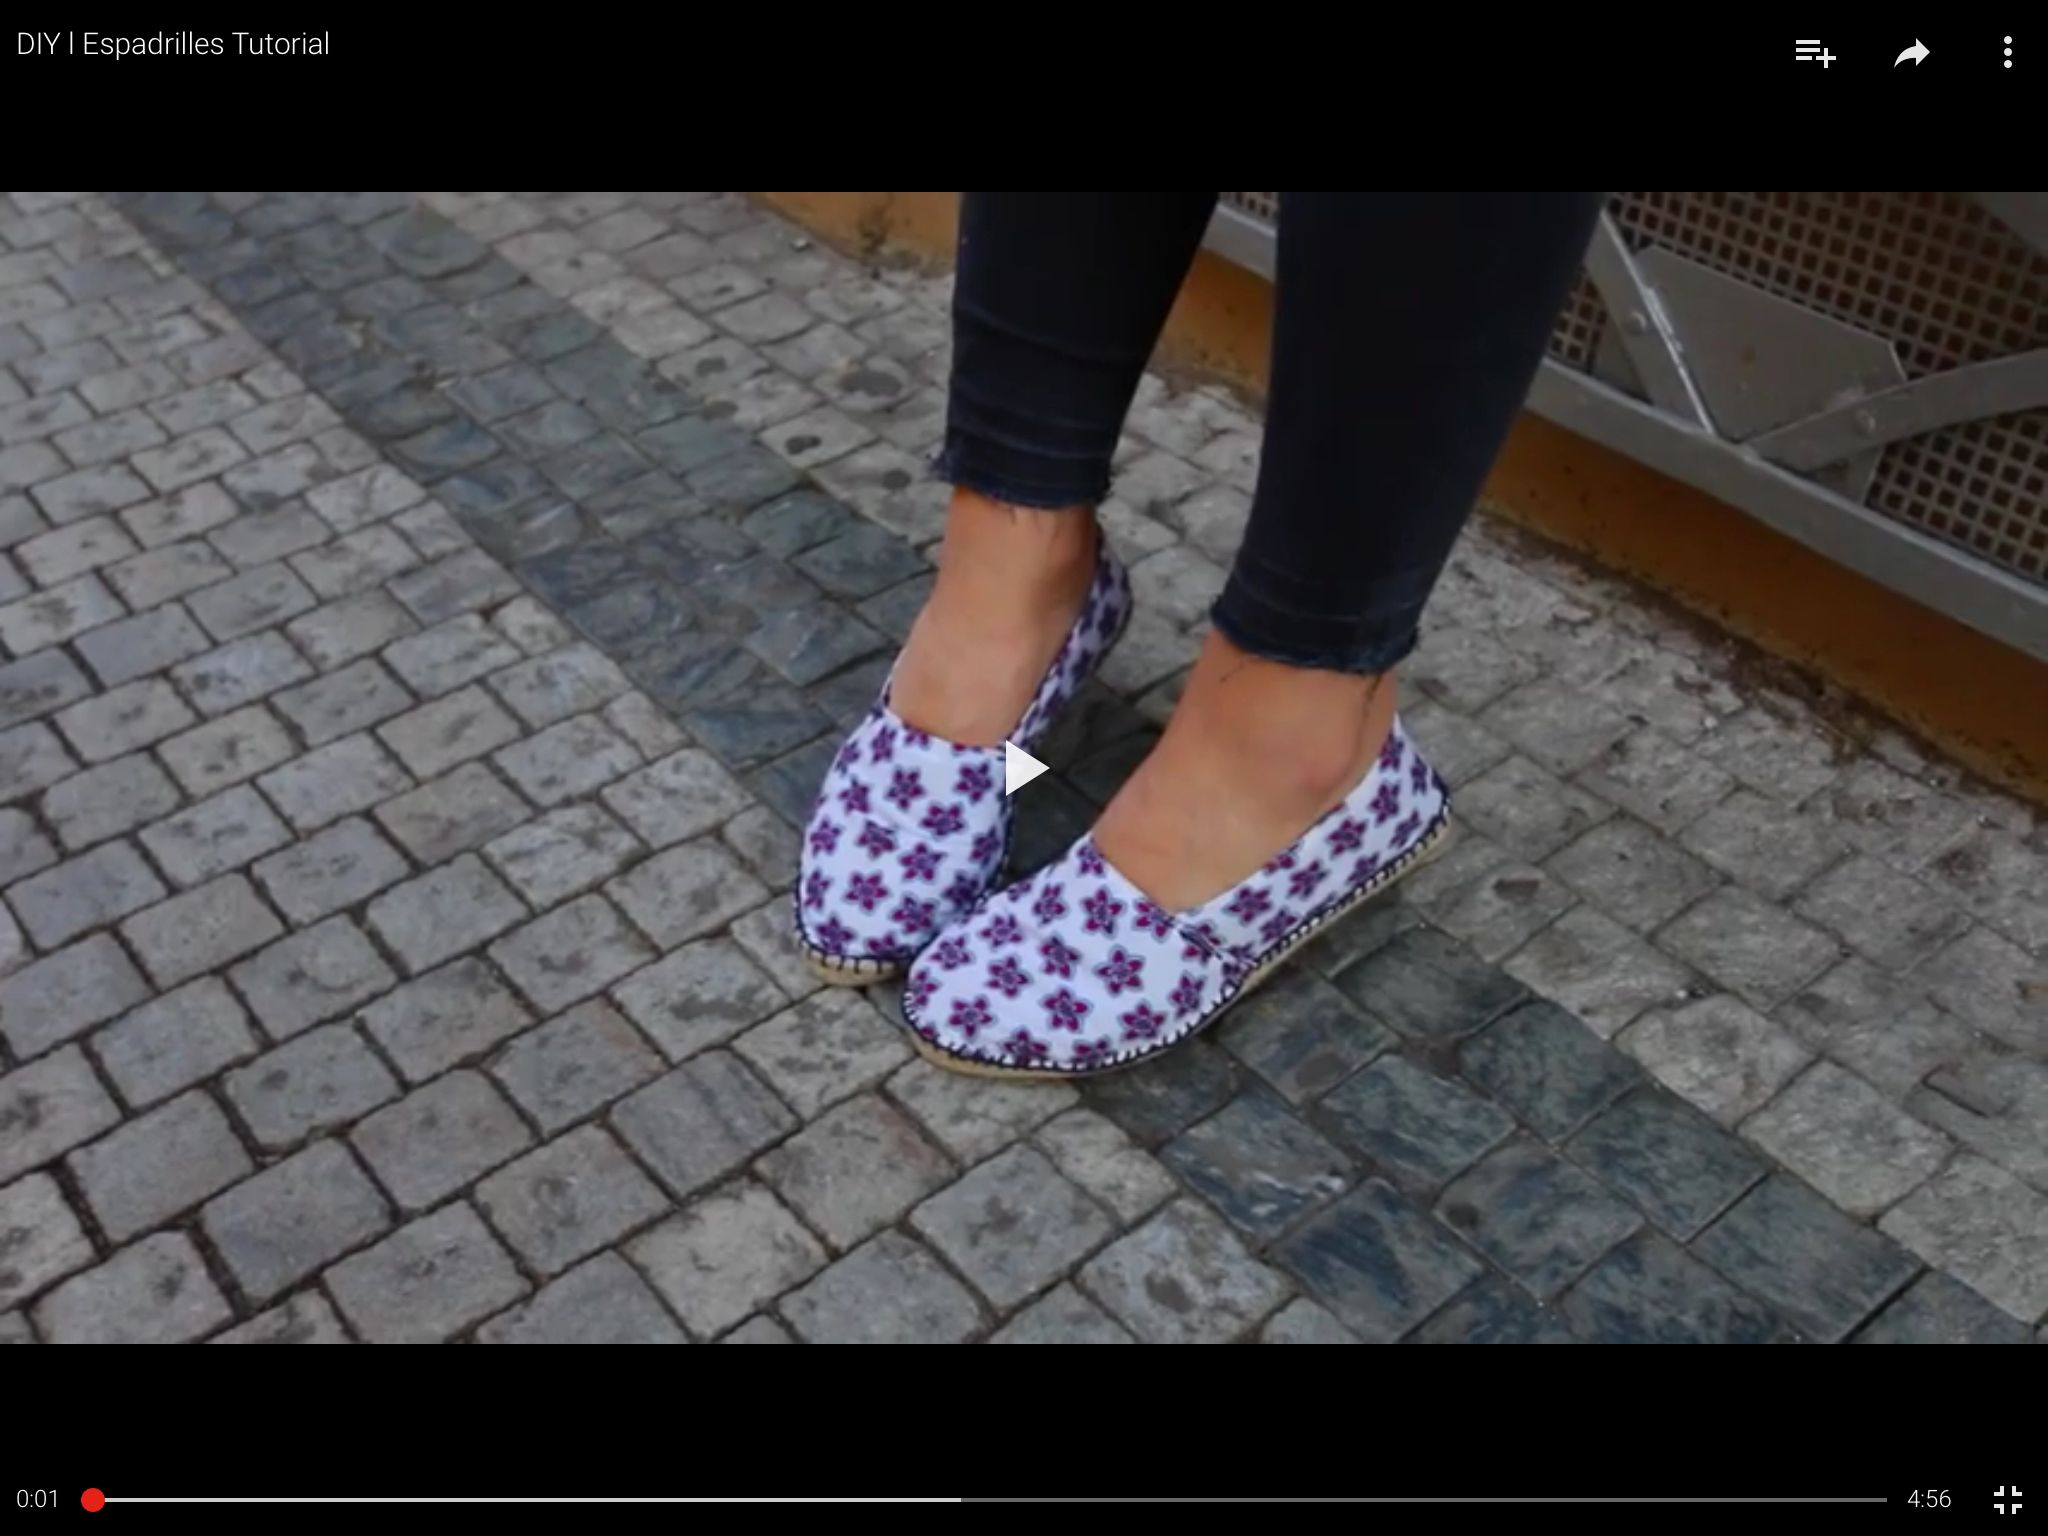 Tutorial Espadrilles deutsch https://youtu.be/Y_Y4OaCJQFM